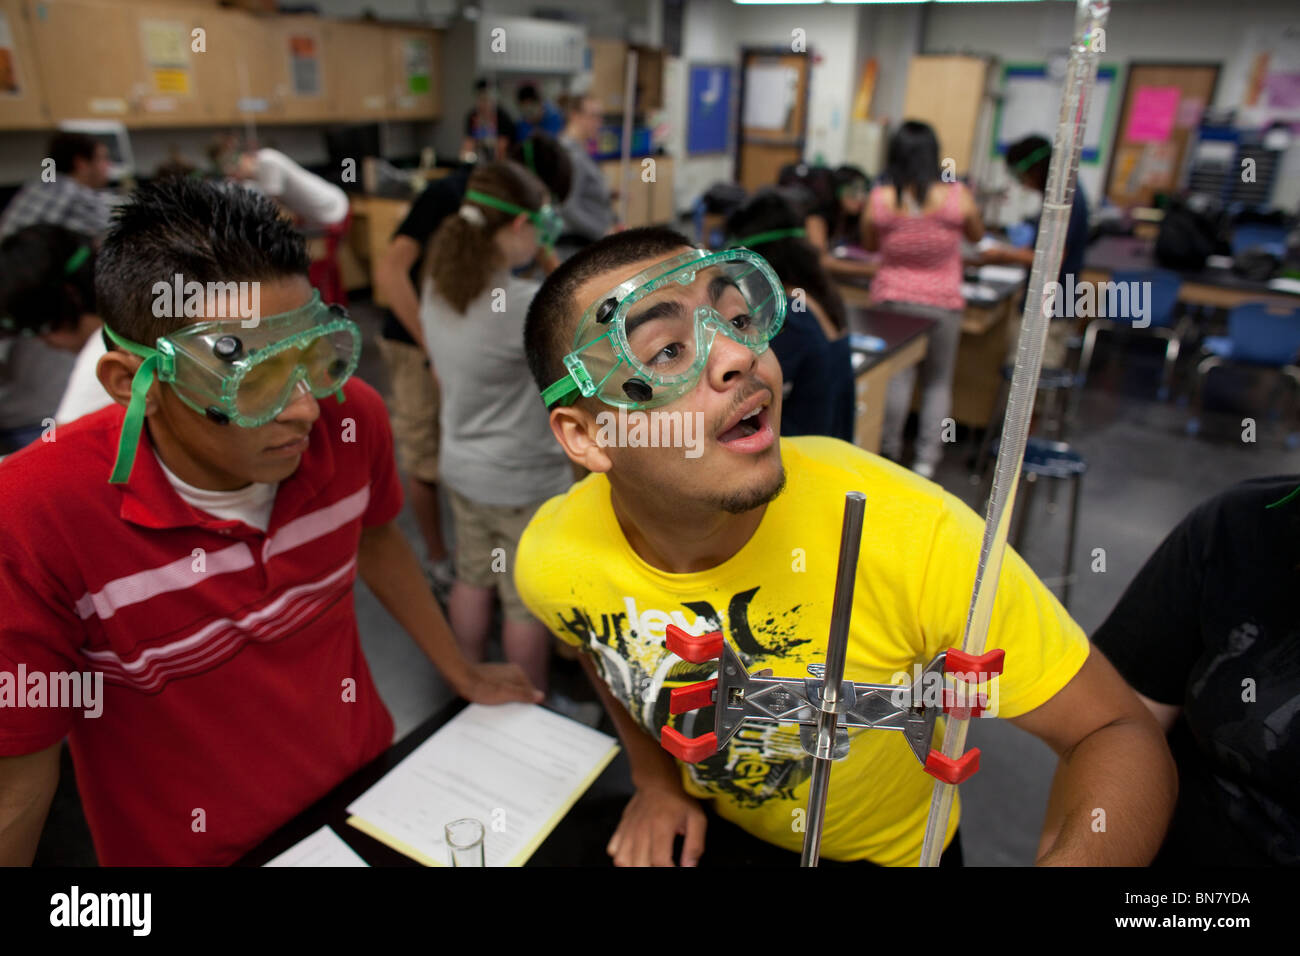 High school boys wearing safety goggles observe liquid in a graduated cylinder during a titration experiment in Stock Photo